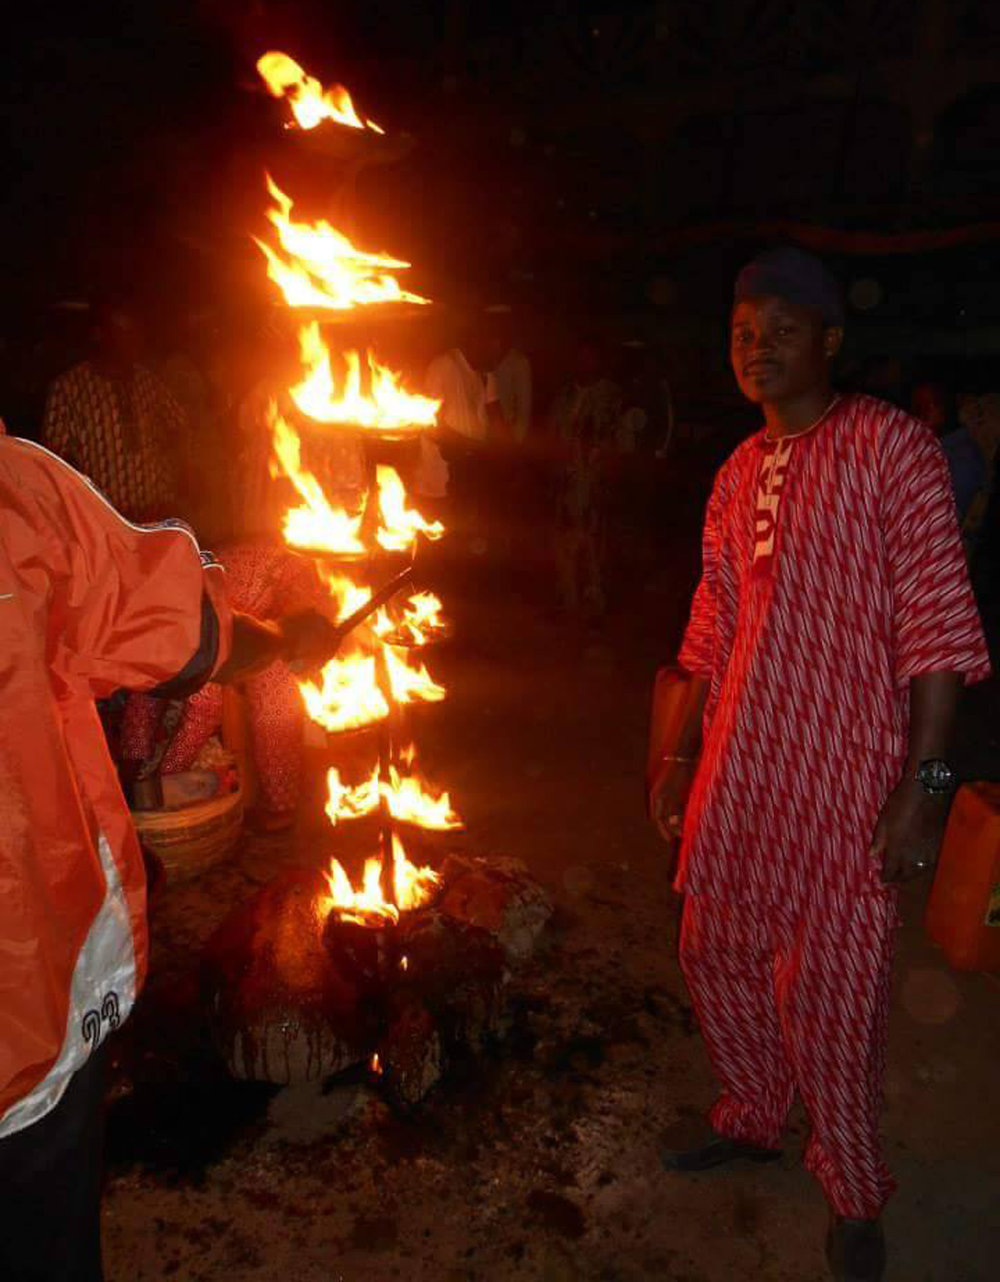 The Ọ̀ṣun festival starts with the lightening of the 16 flames of ọ̀pá osoòrò, an oil lamp commemorating the encounter of Timẹhin with a group of 16 spirits of Òrìsà Ọ̀sanyìn before Òṣogbo was founded. It burns all night long. Here with Ṣàngóṣakin Àjàlá. © Ilé Àrìrà